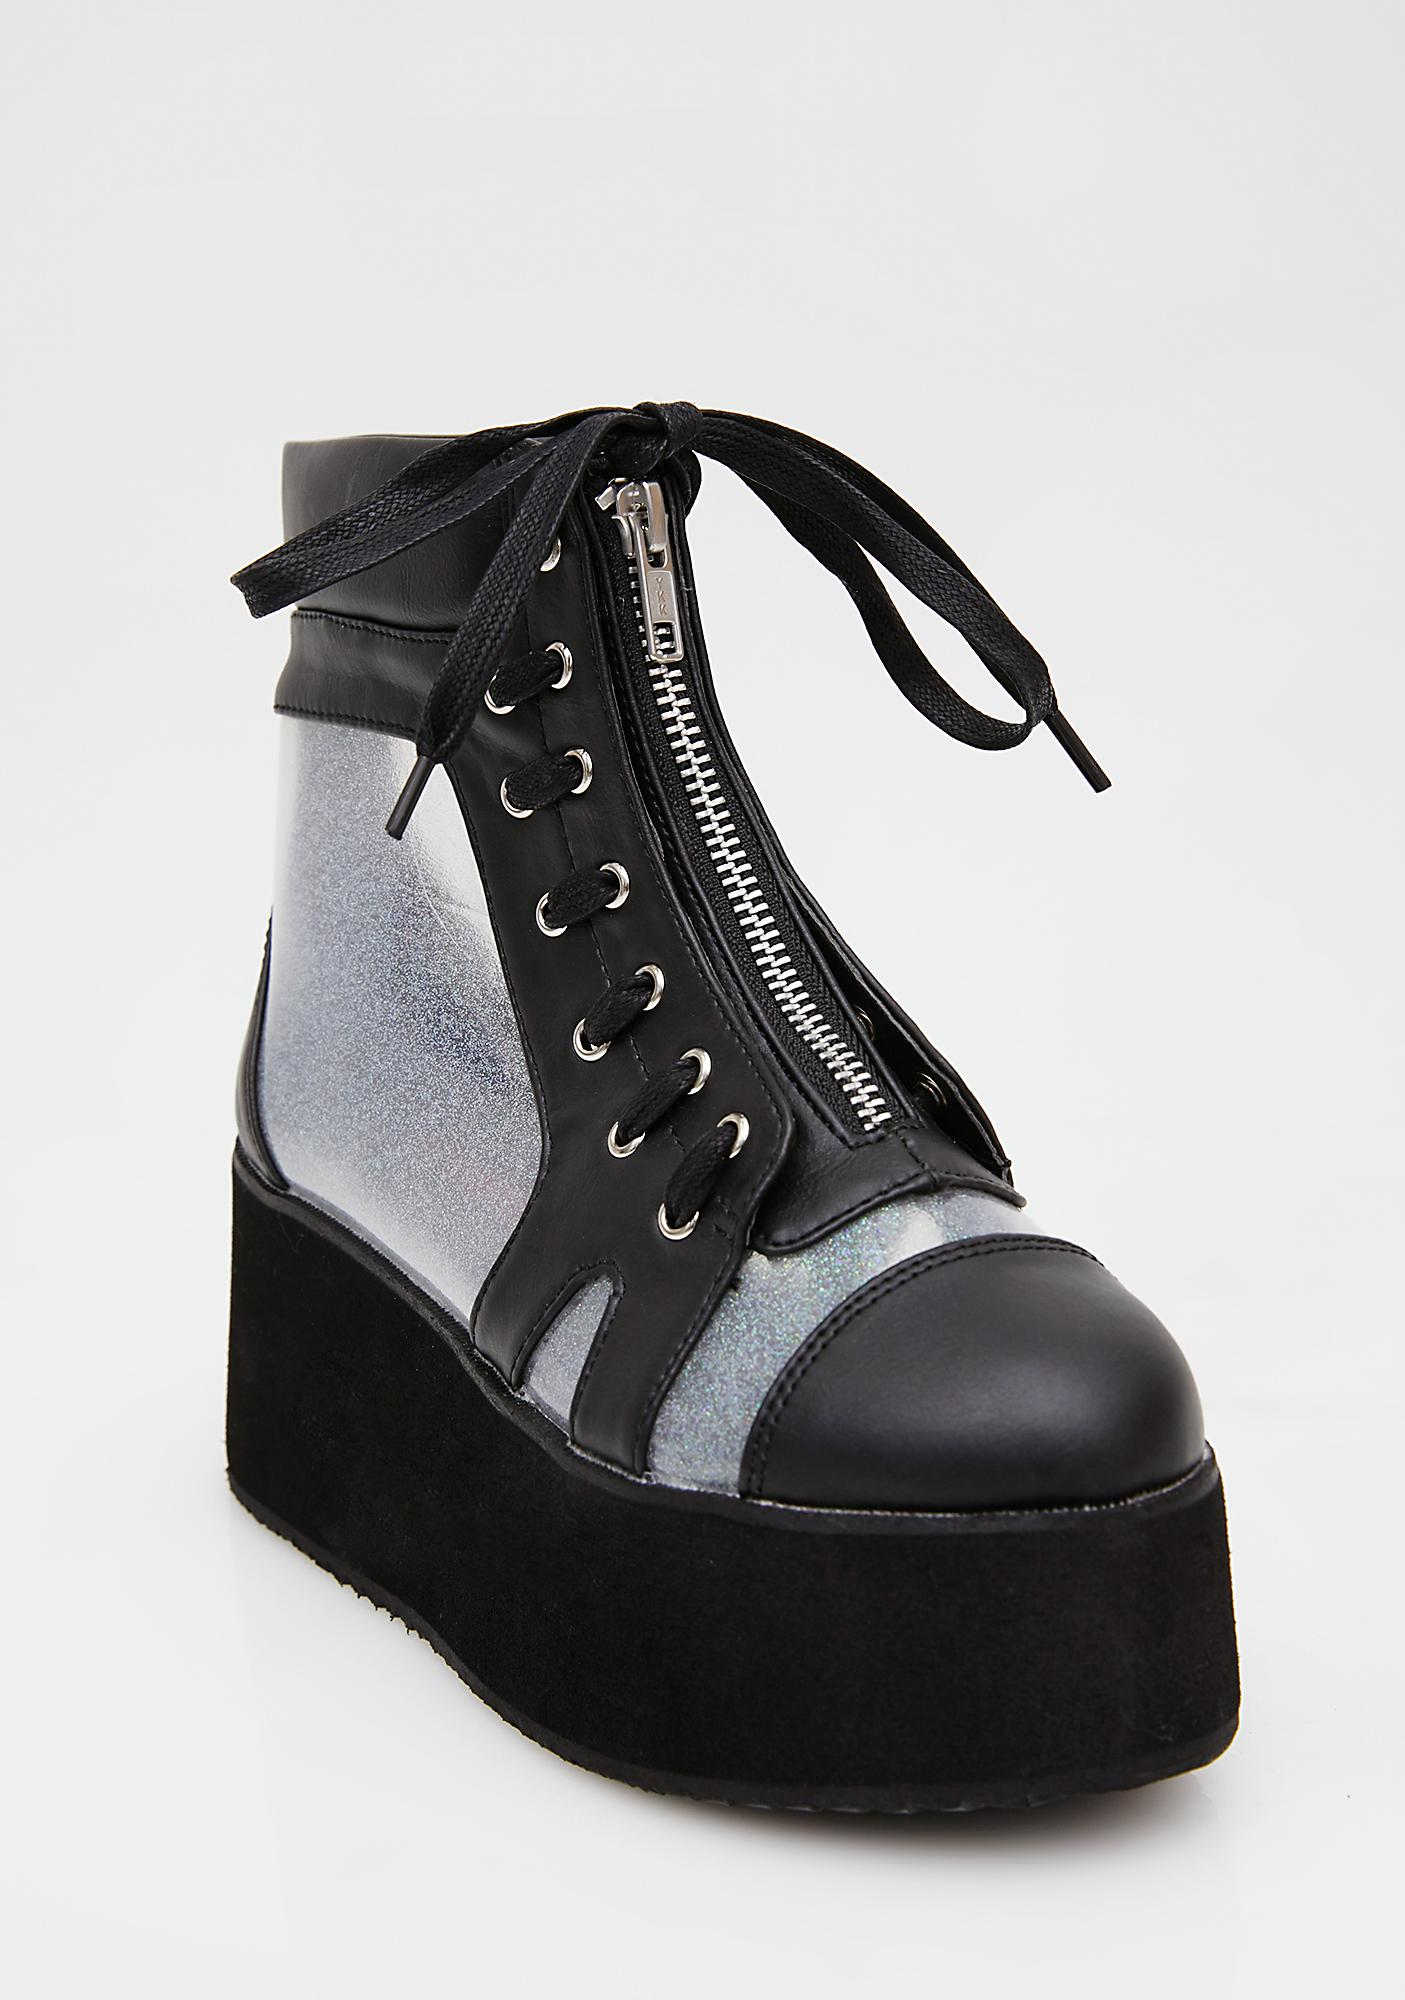 Demonia See-Thru Holographic Platform Ankle Boots